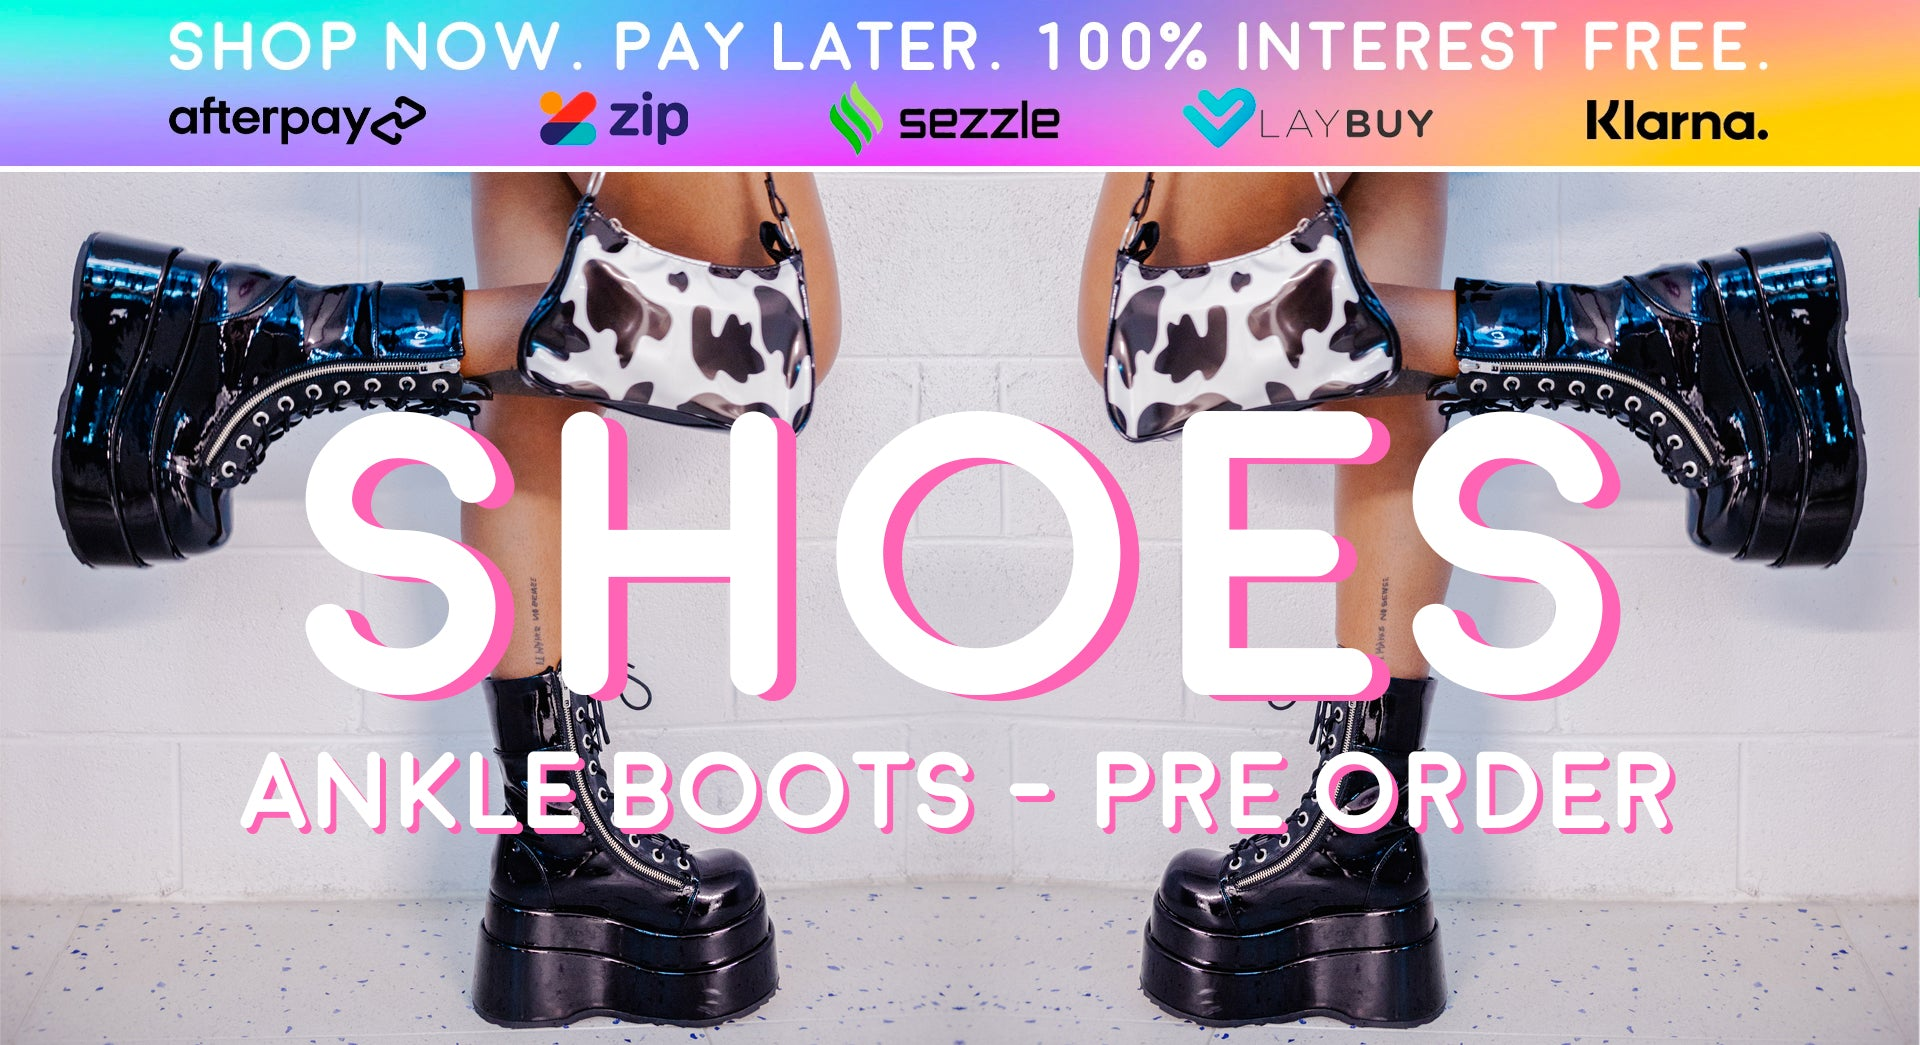 ankle boots - pre order